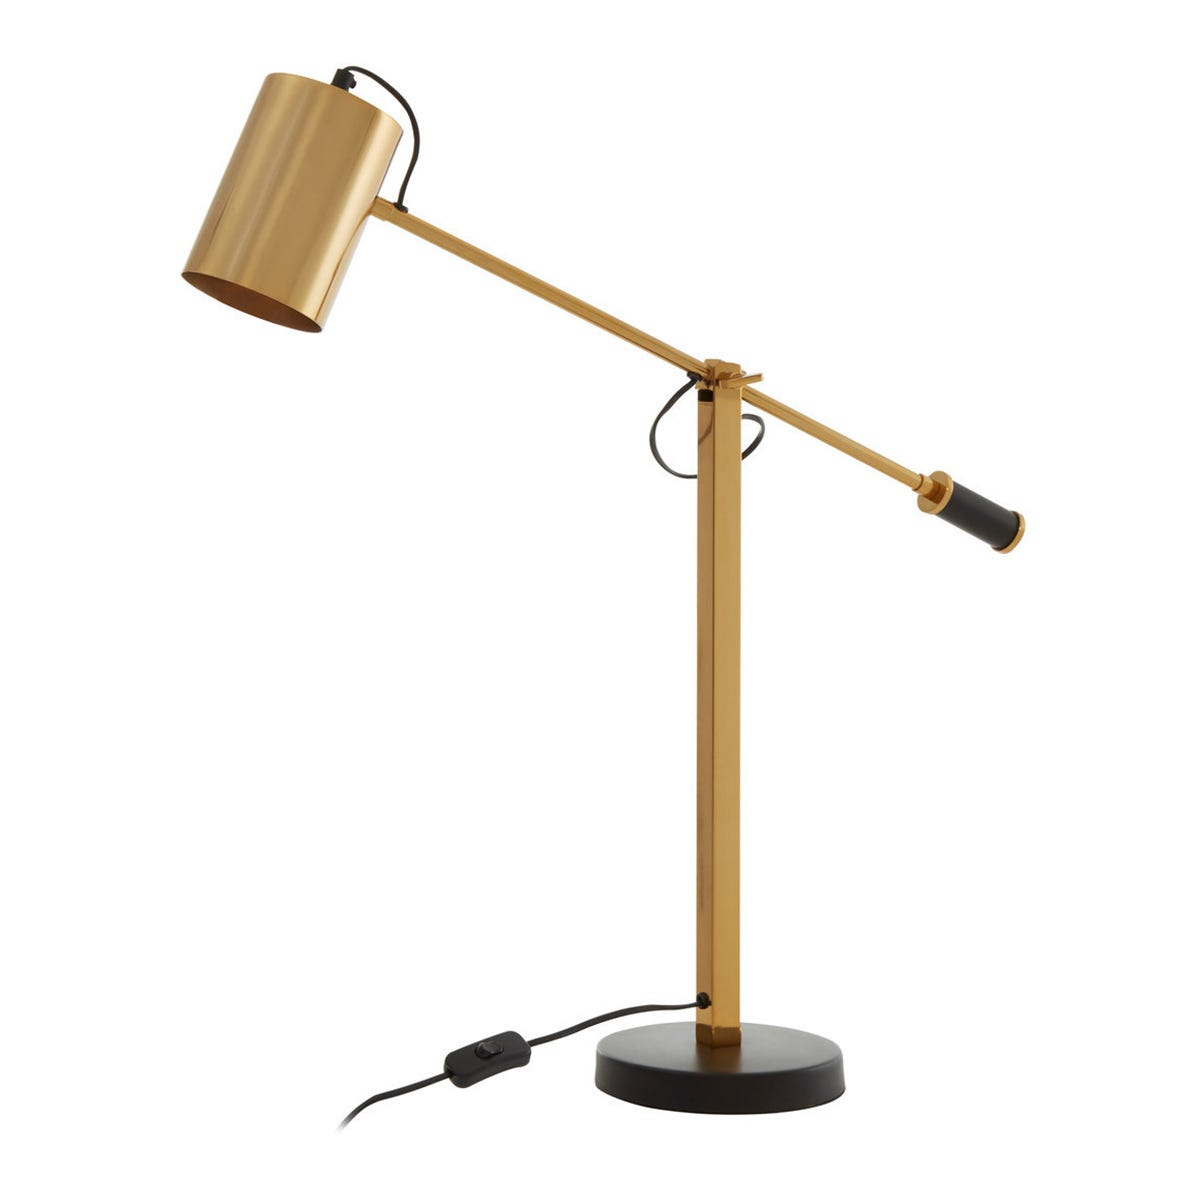 Interiors By Premier Vintage Table Lamp - Black/Gold Finish